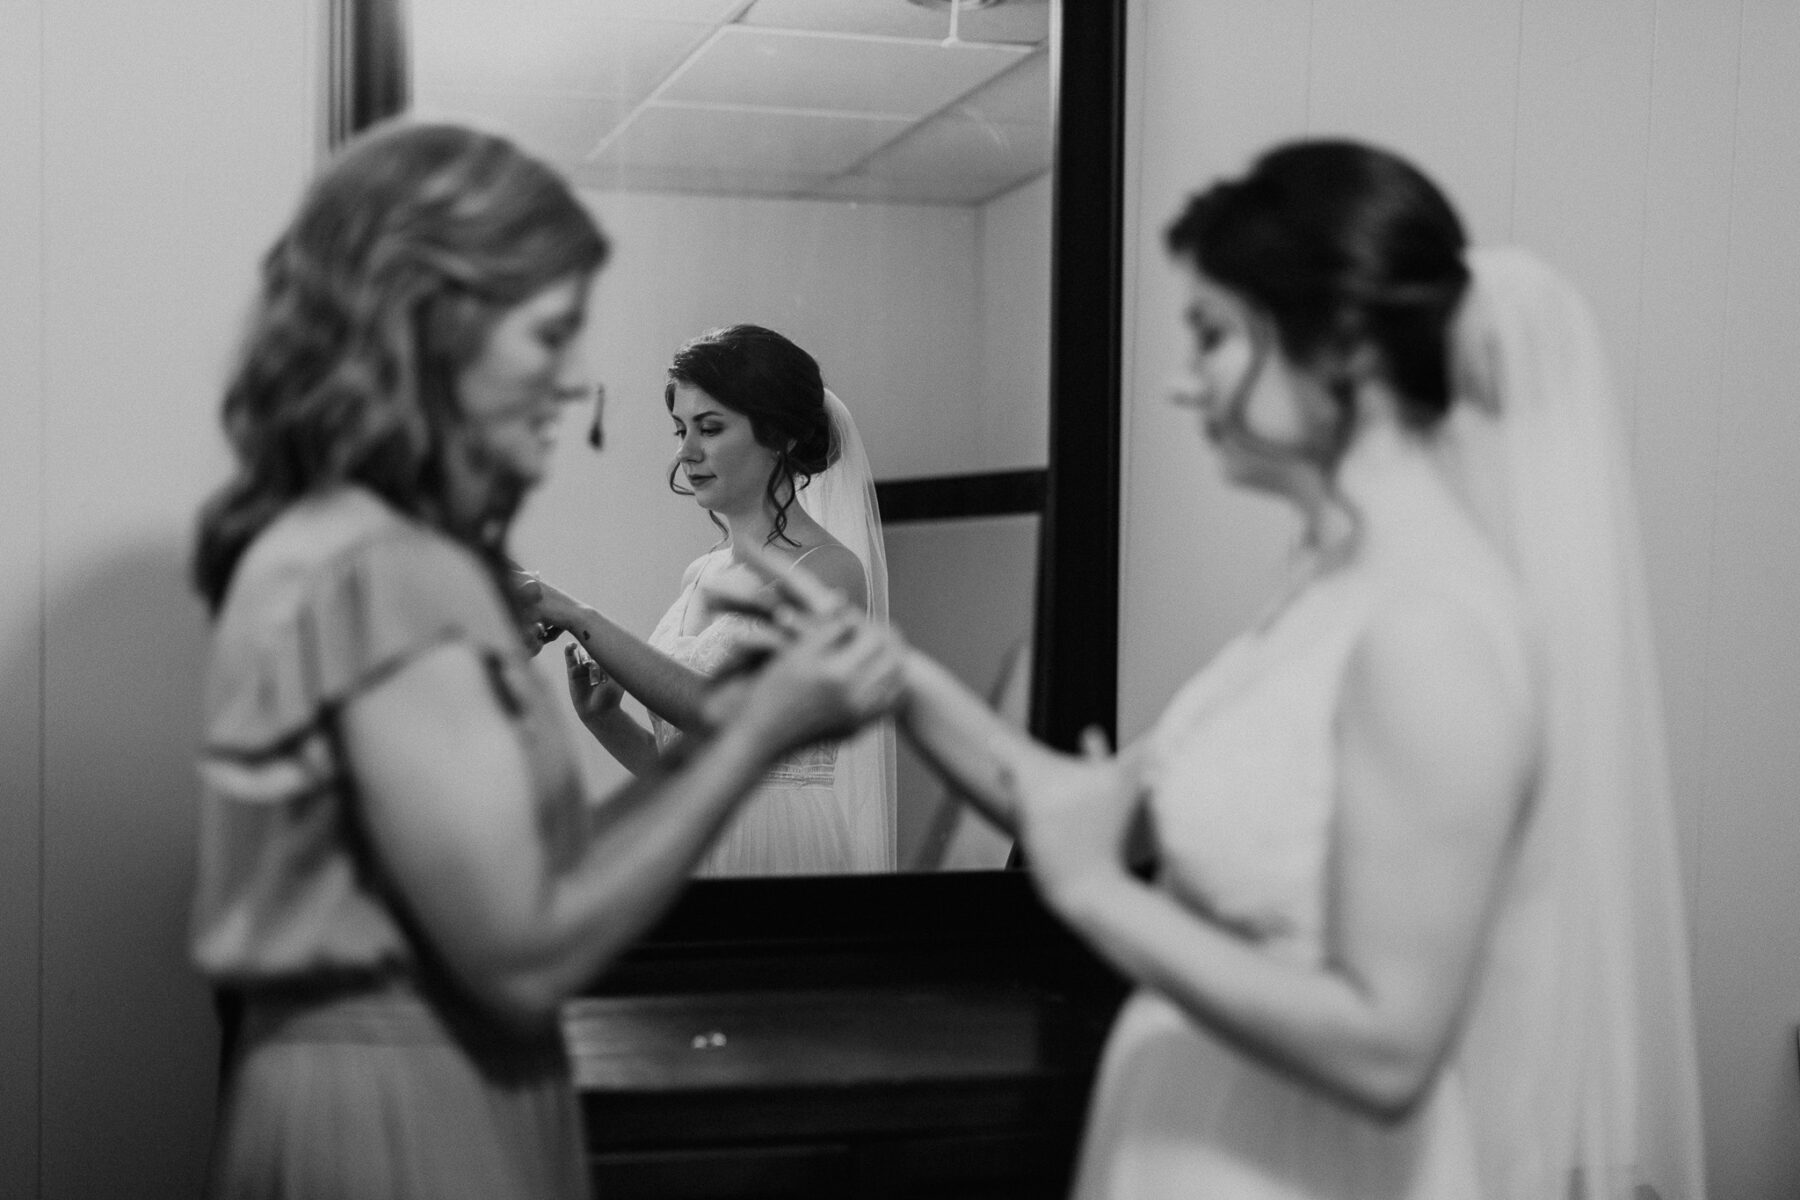 Bride getting ready: Vibrant Summer Wedding at Sinking Creek Farm featured on Nashville Bride Guide